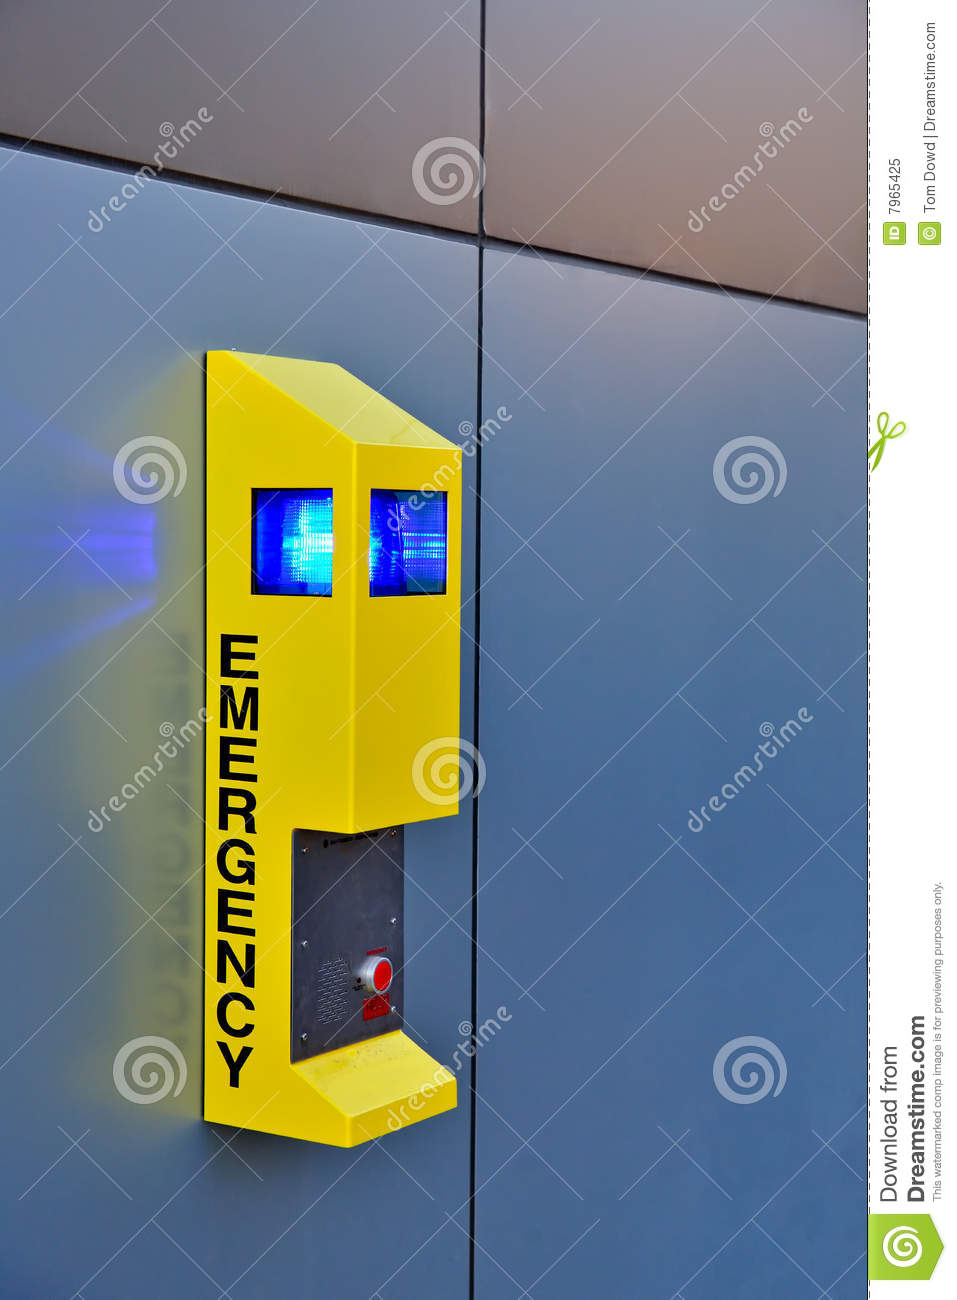 Emergency Call Box Royalty Free Stock Photo Image 7965425